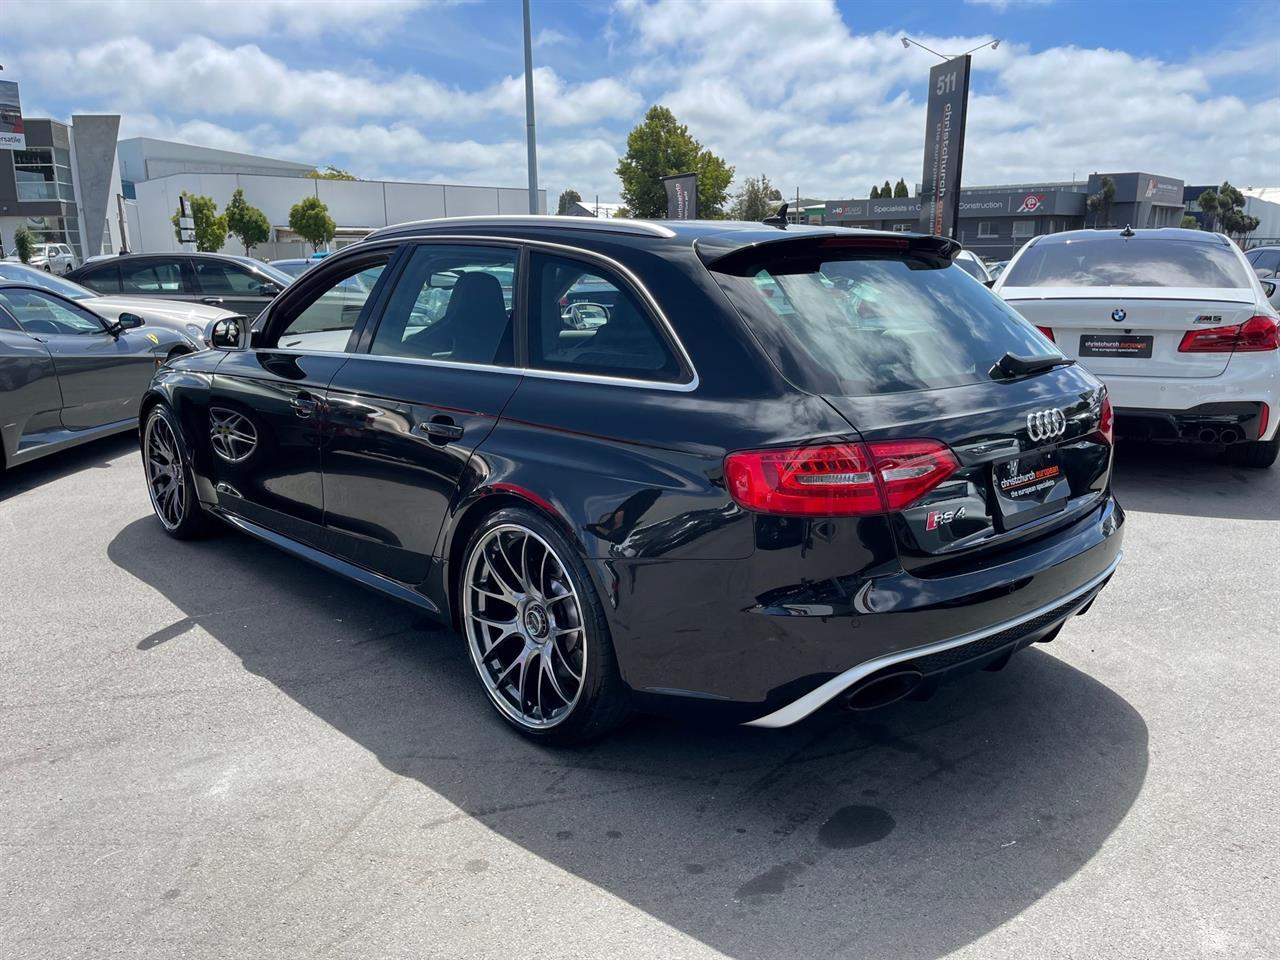 image-4, 2013 Audi RS4 4.2 V8 FSI Quattro Black Pack Wagon at Christchurch